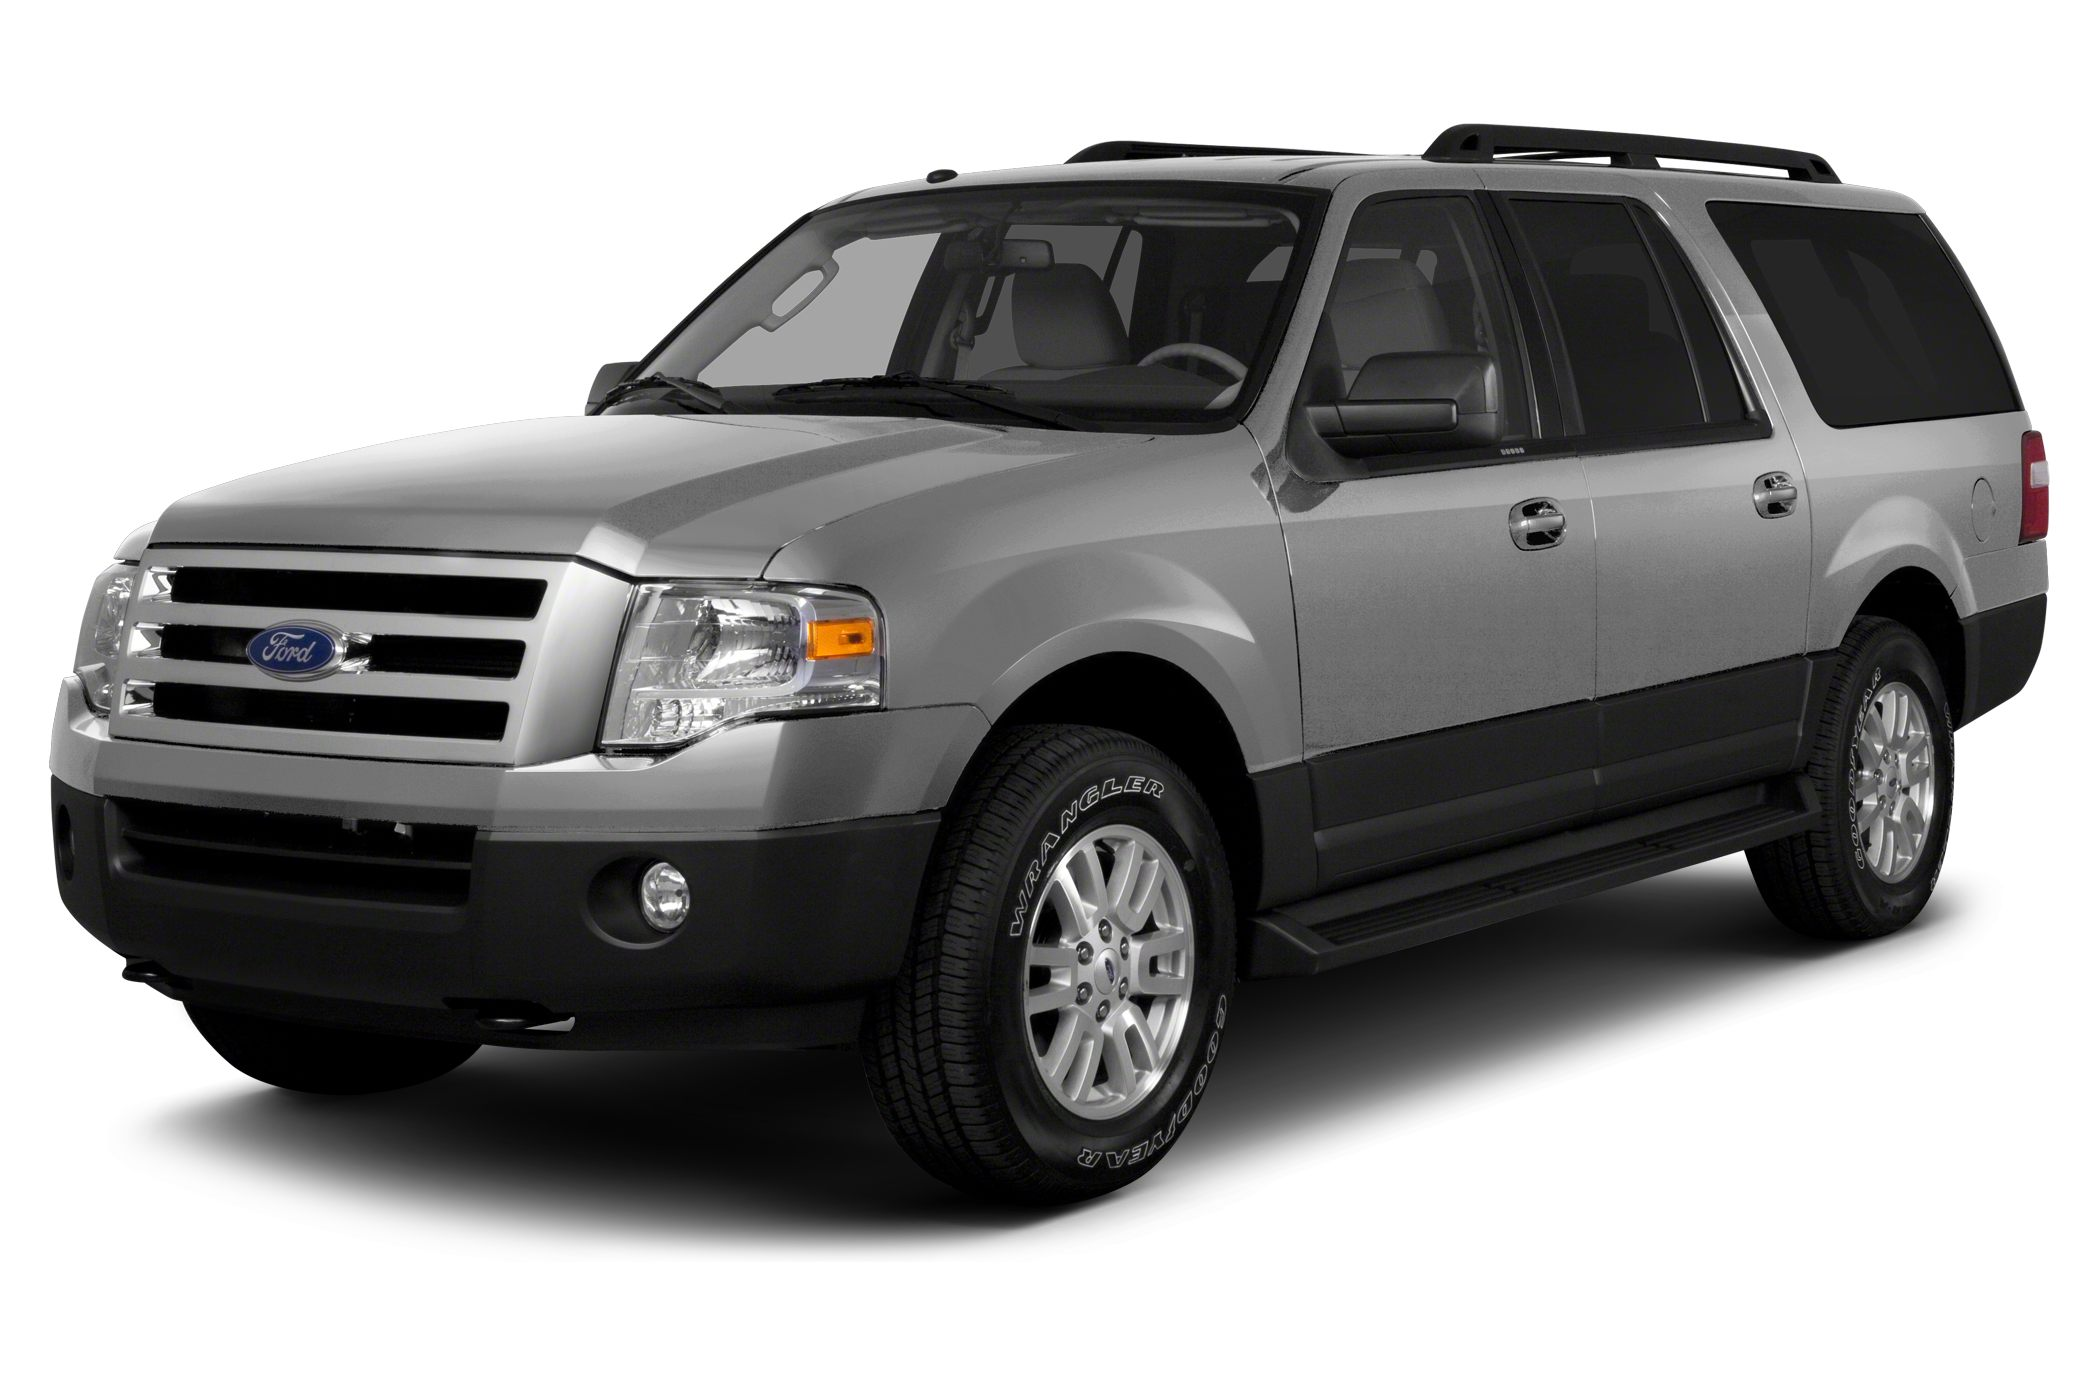 2014 Ford Expedition EL XLT SUV for sale in Ruston for $36,900 with 35,333 miles